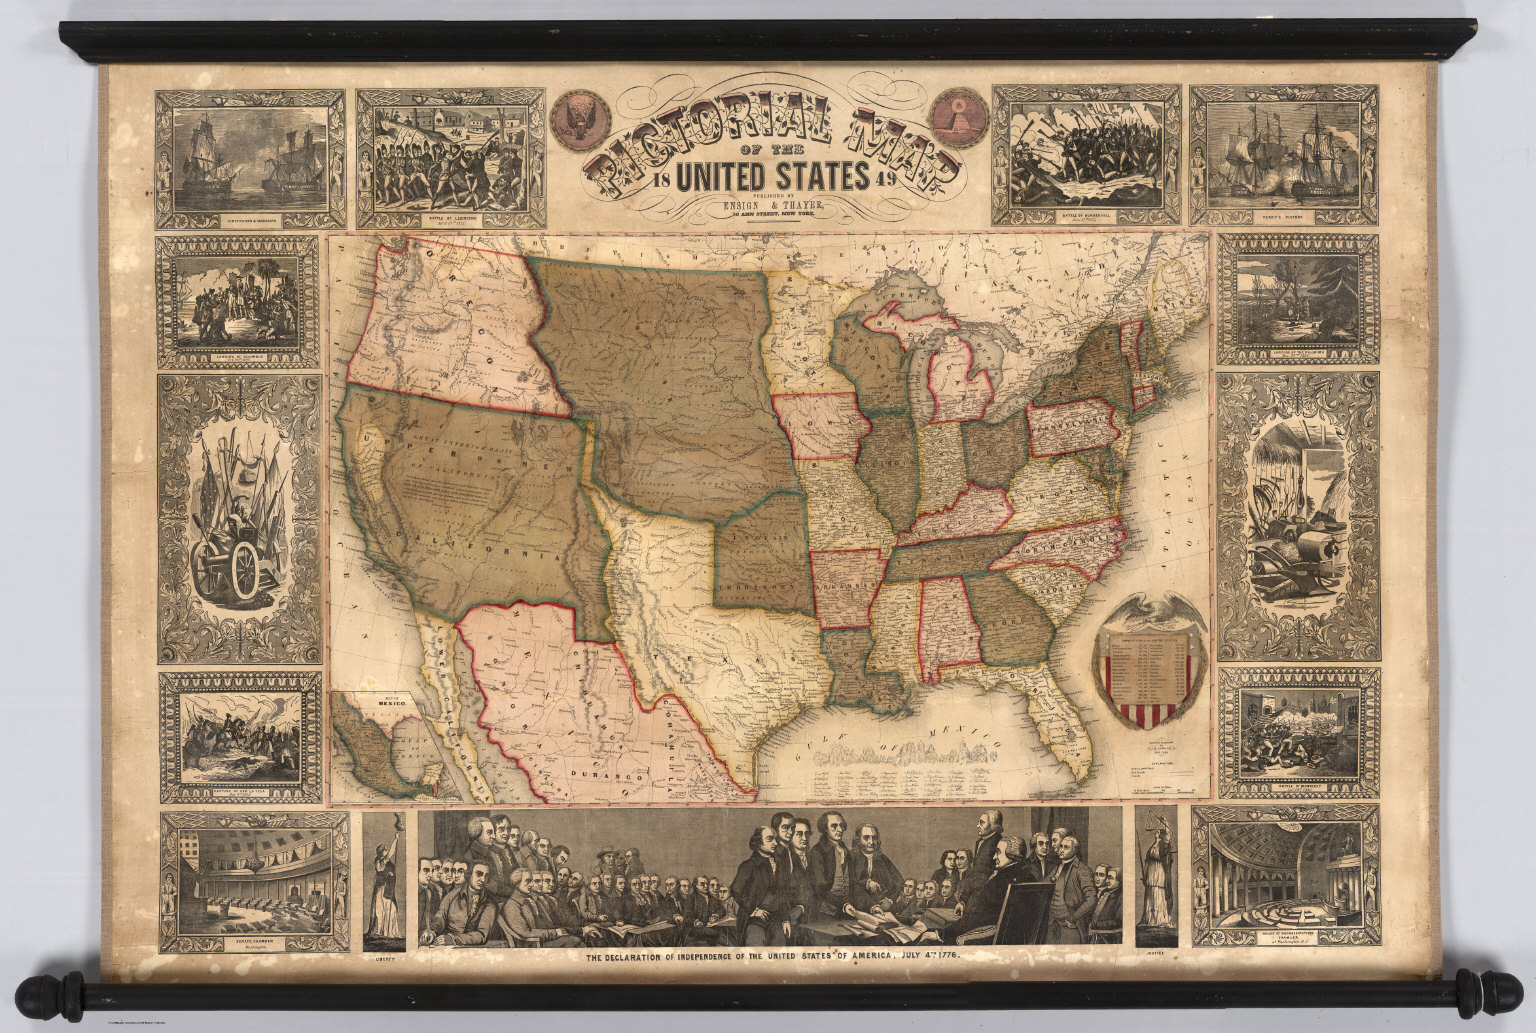 Pictorial Map Of The United States David Rumsey Historical Map - United states map picture frame